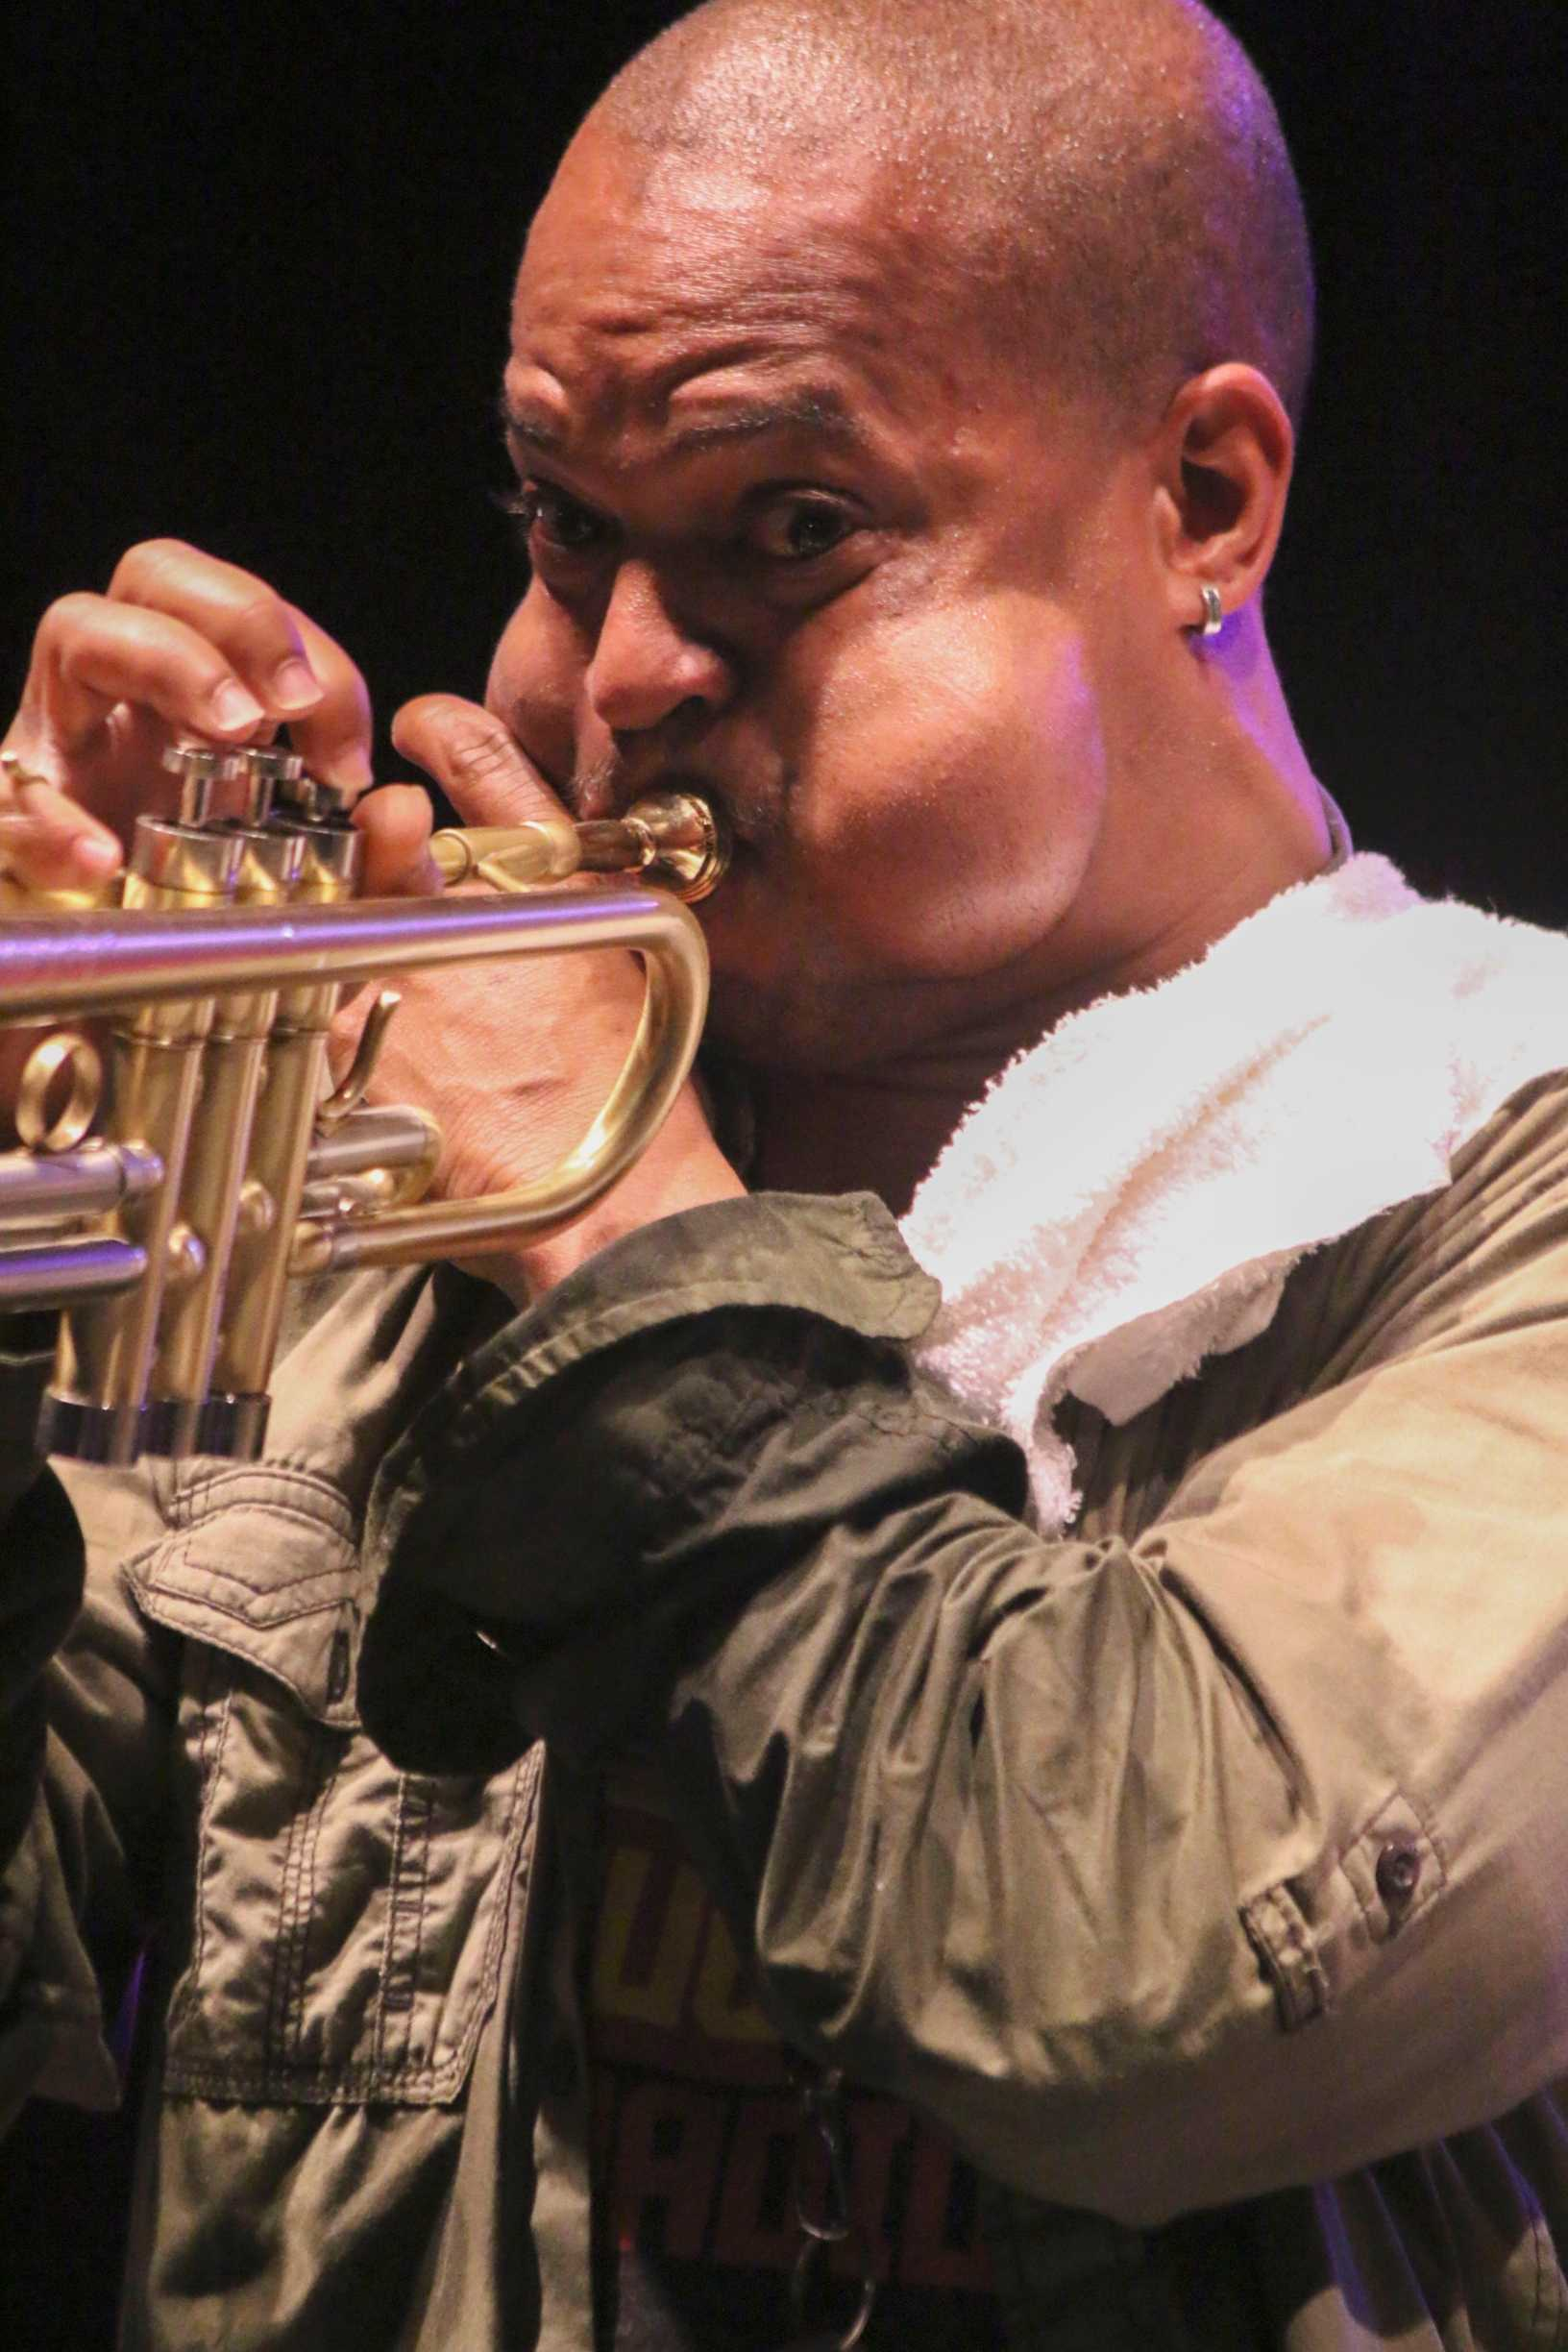 Derrick Shezbie of the Rebirth Brass Band played Friday, April 10 at French Quarter Festival on the Abita Beer stage.